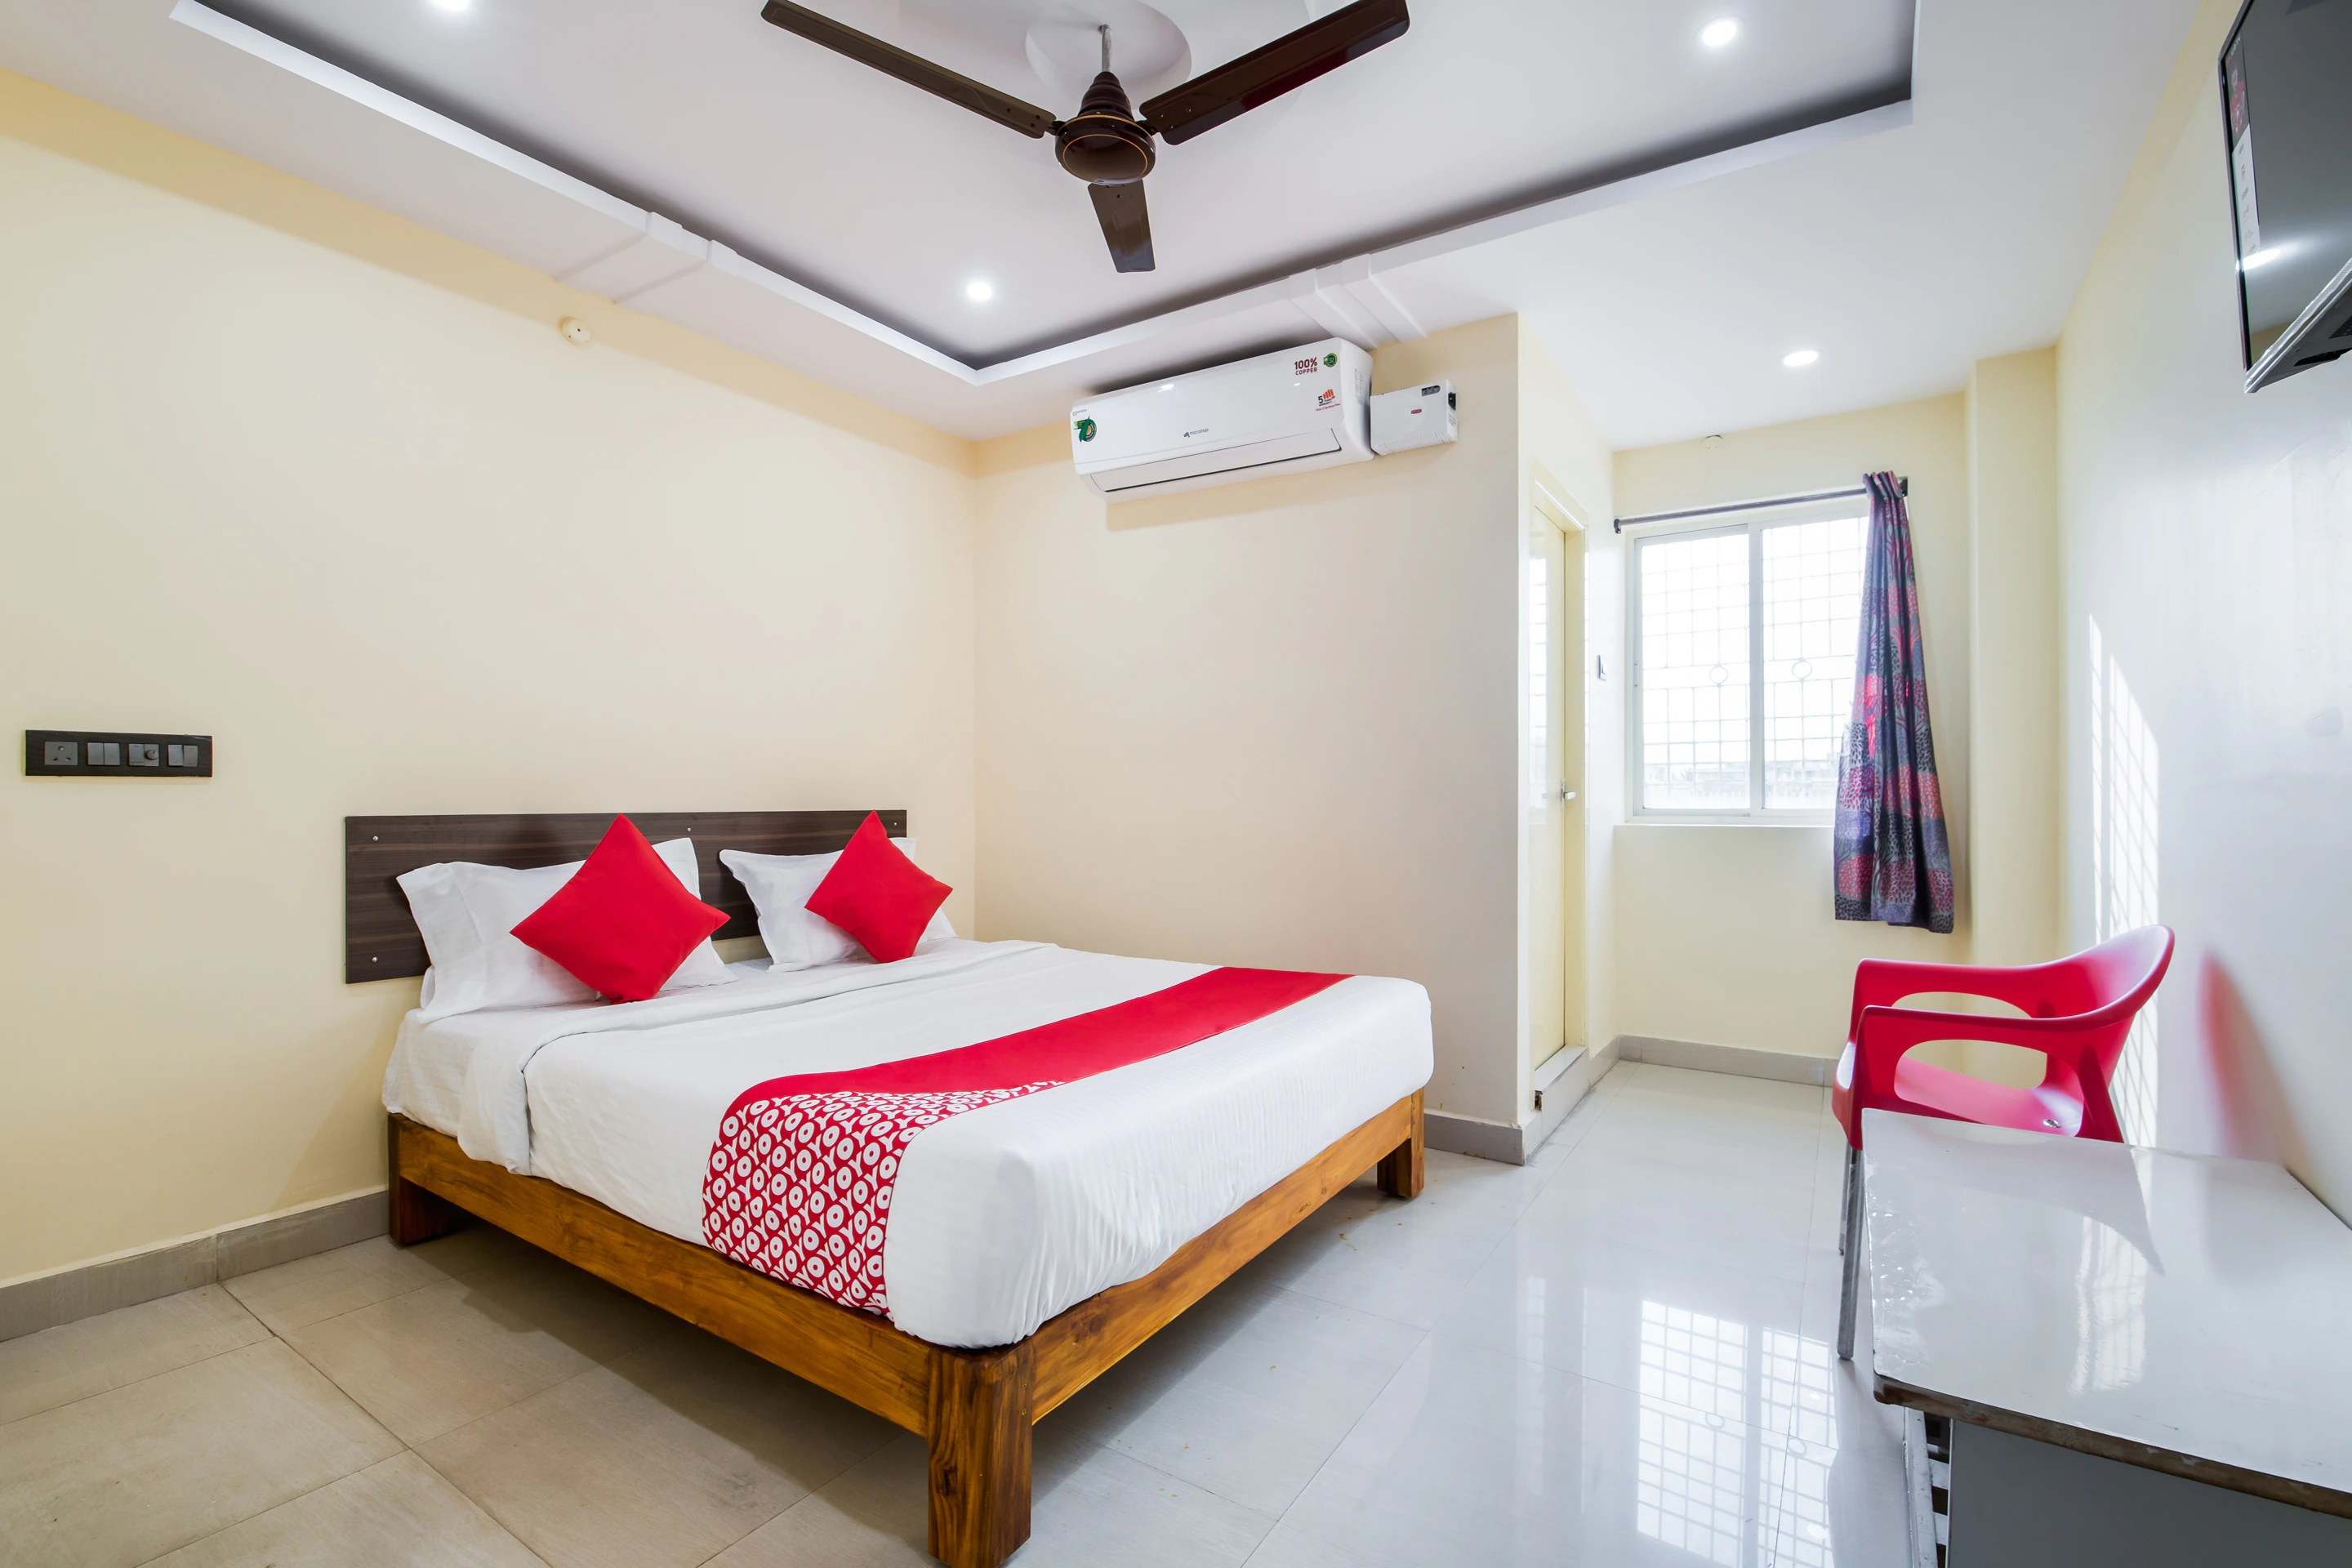 Budget Hotels In Diamond Park Visakhapatnam With Parking